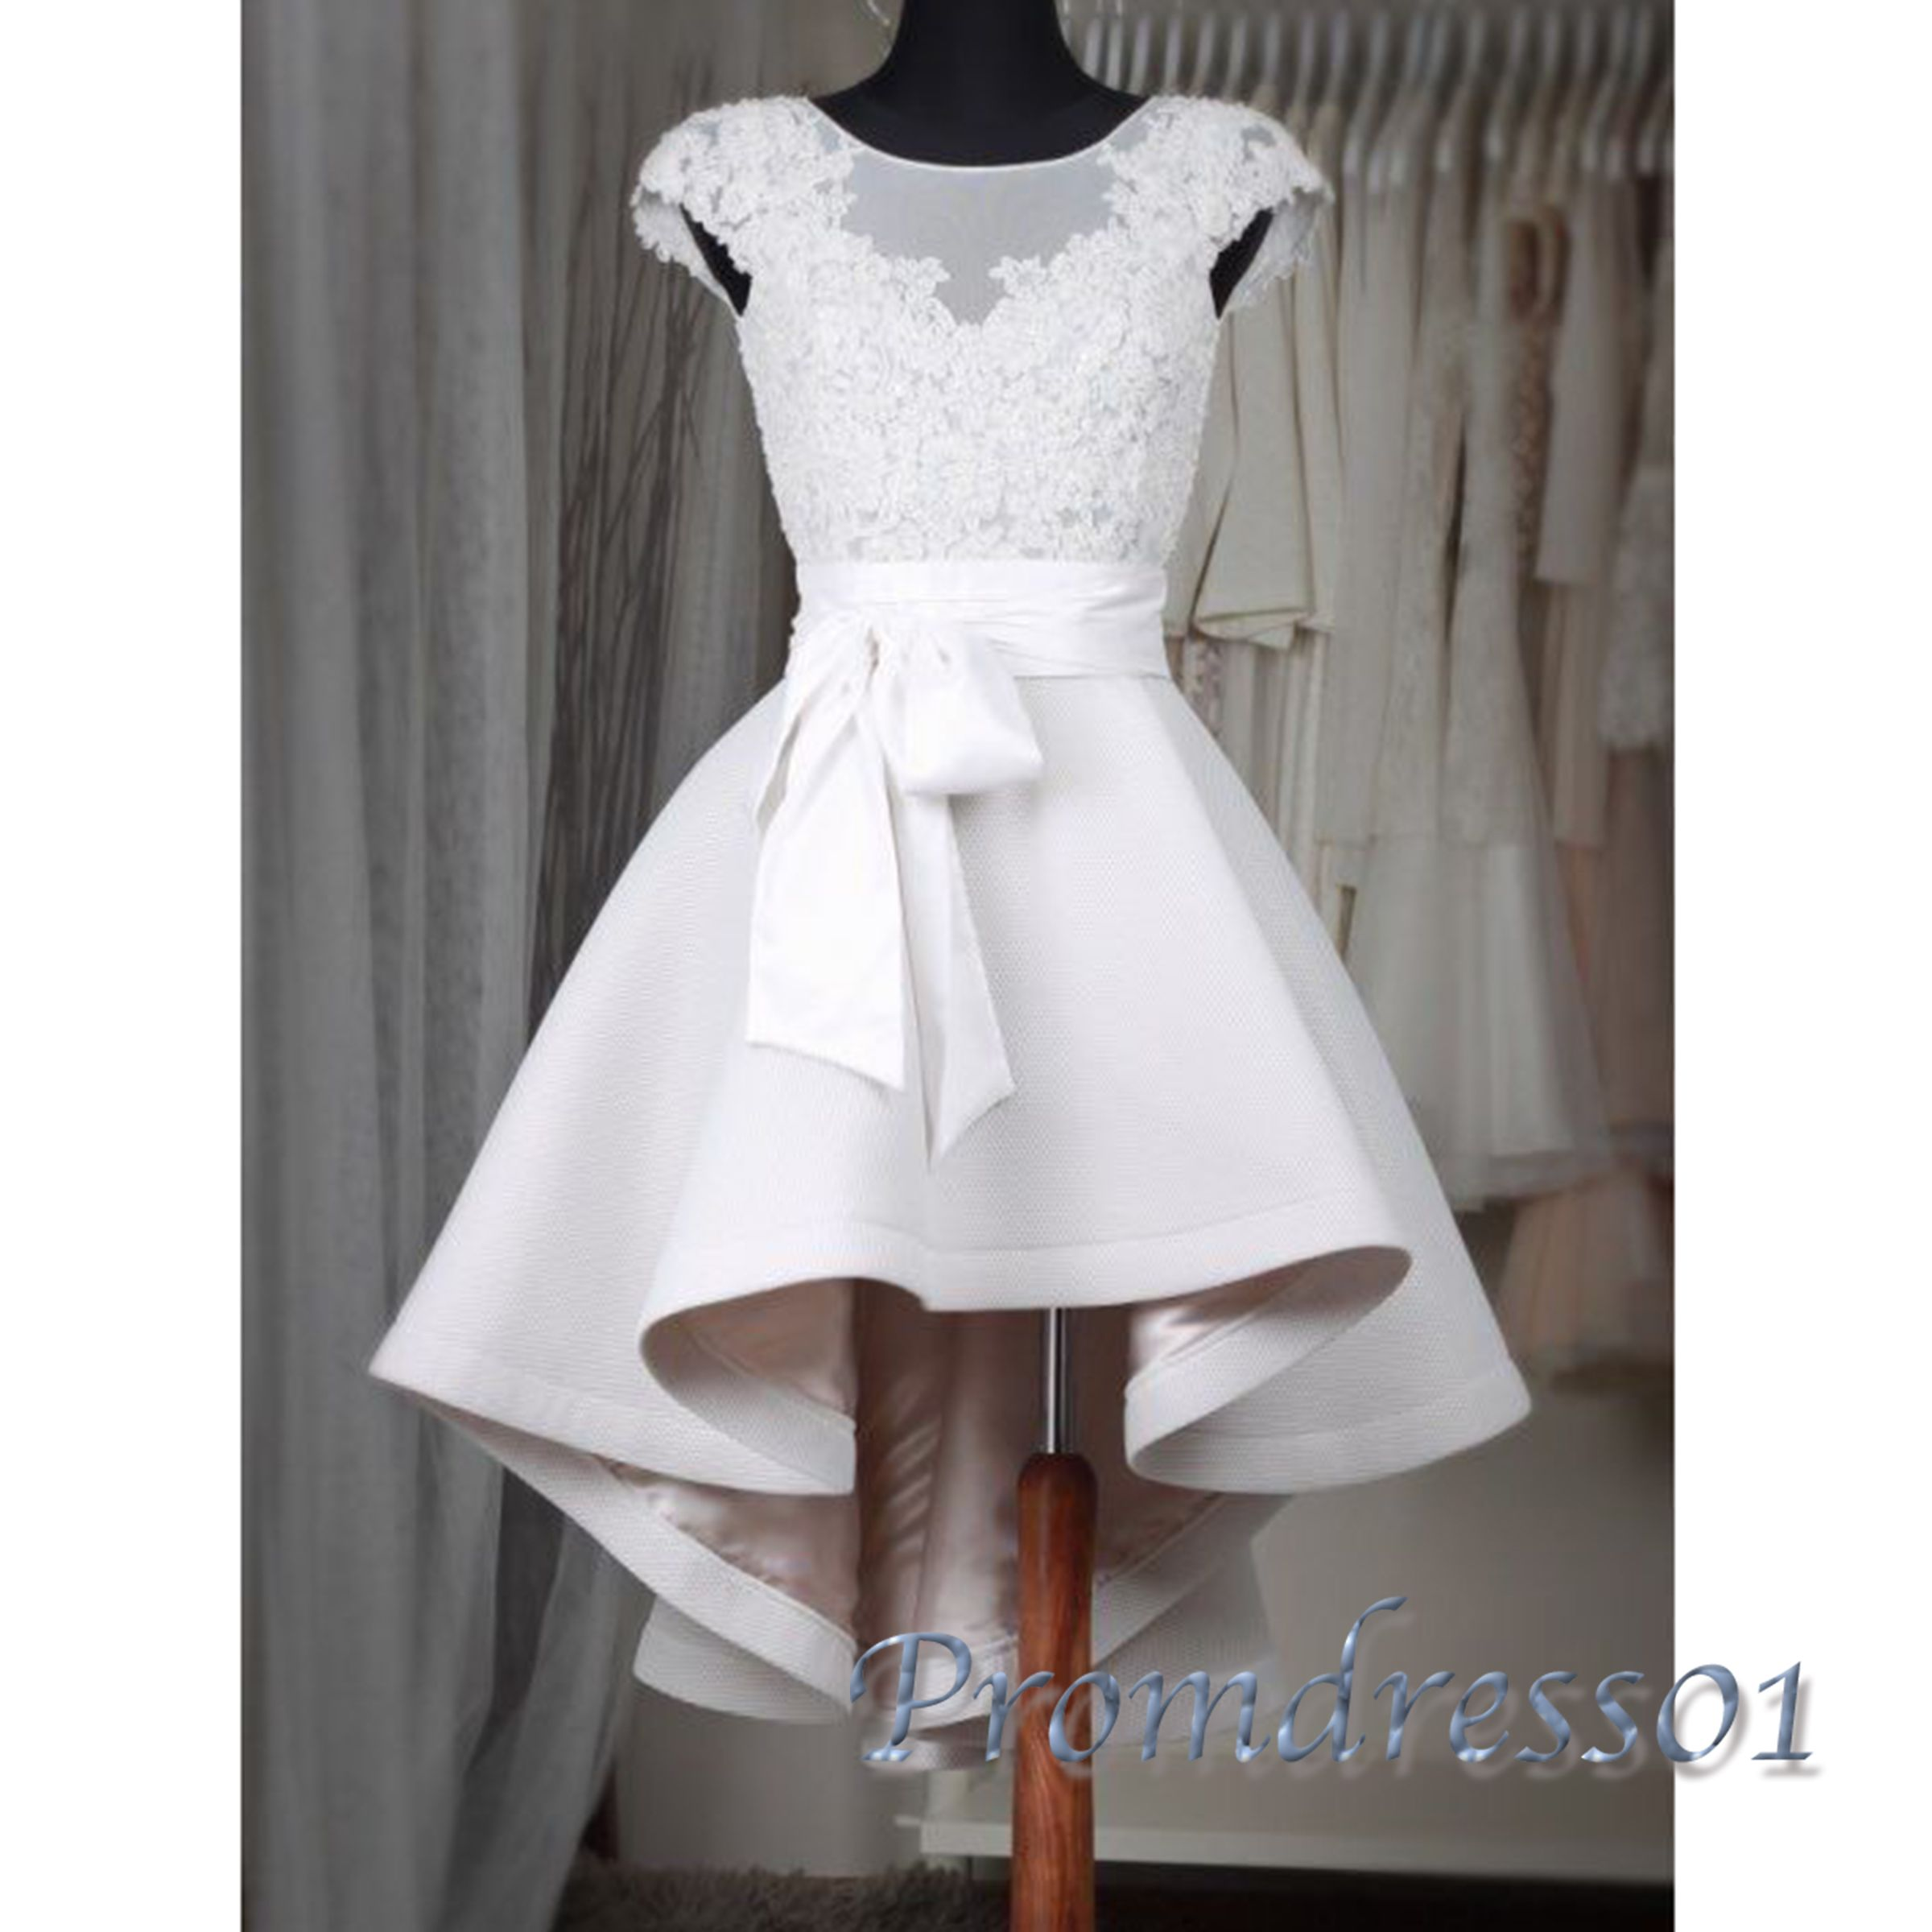 Cute lace appliqued ivory satin short prom dress with bowknot cap